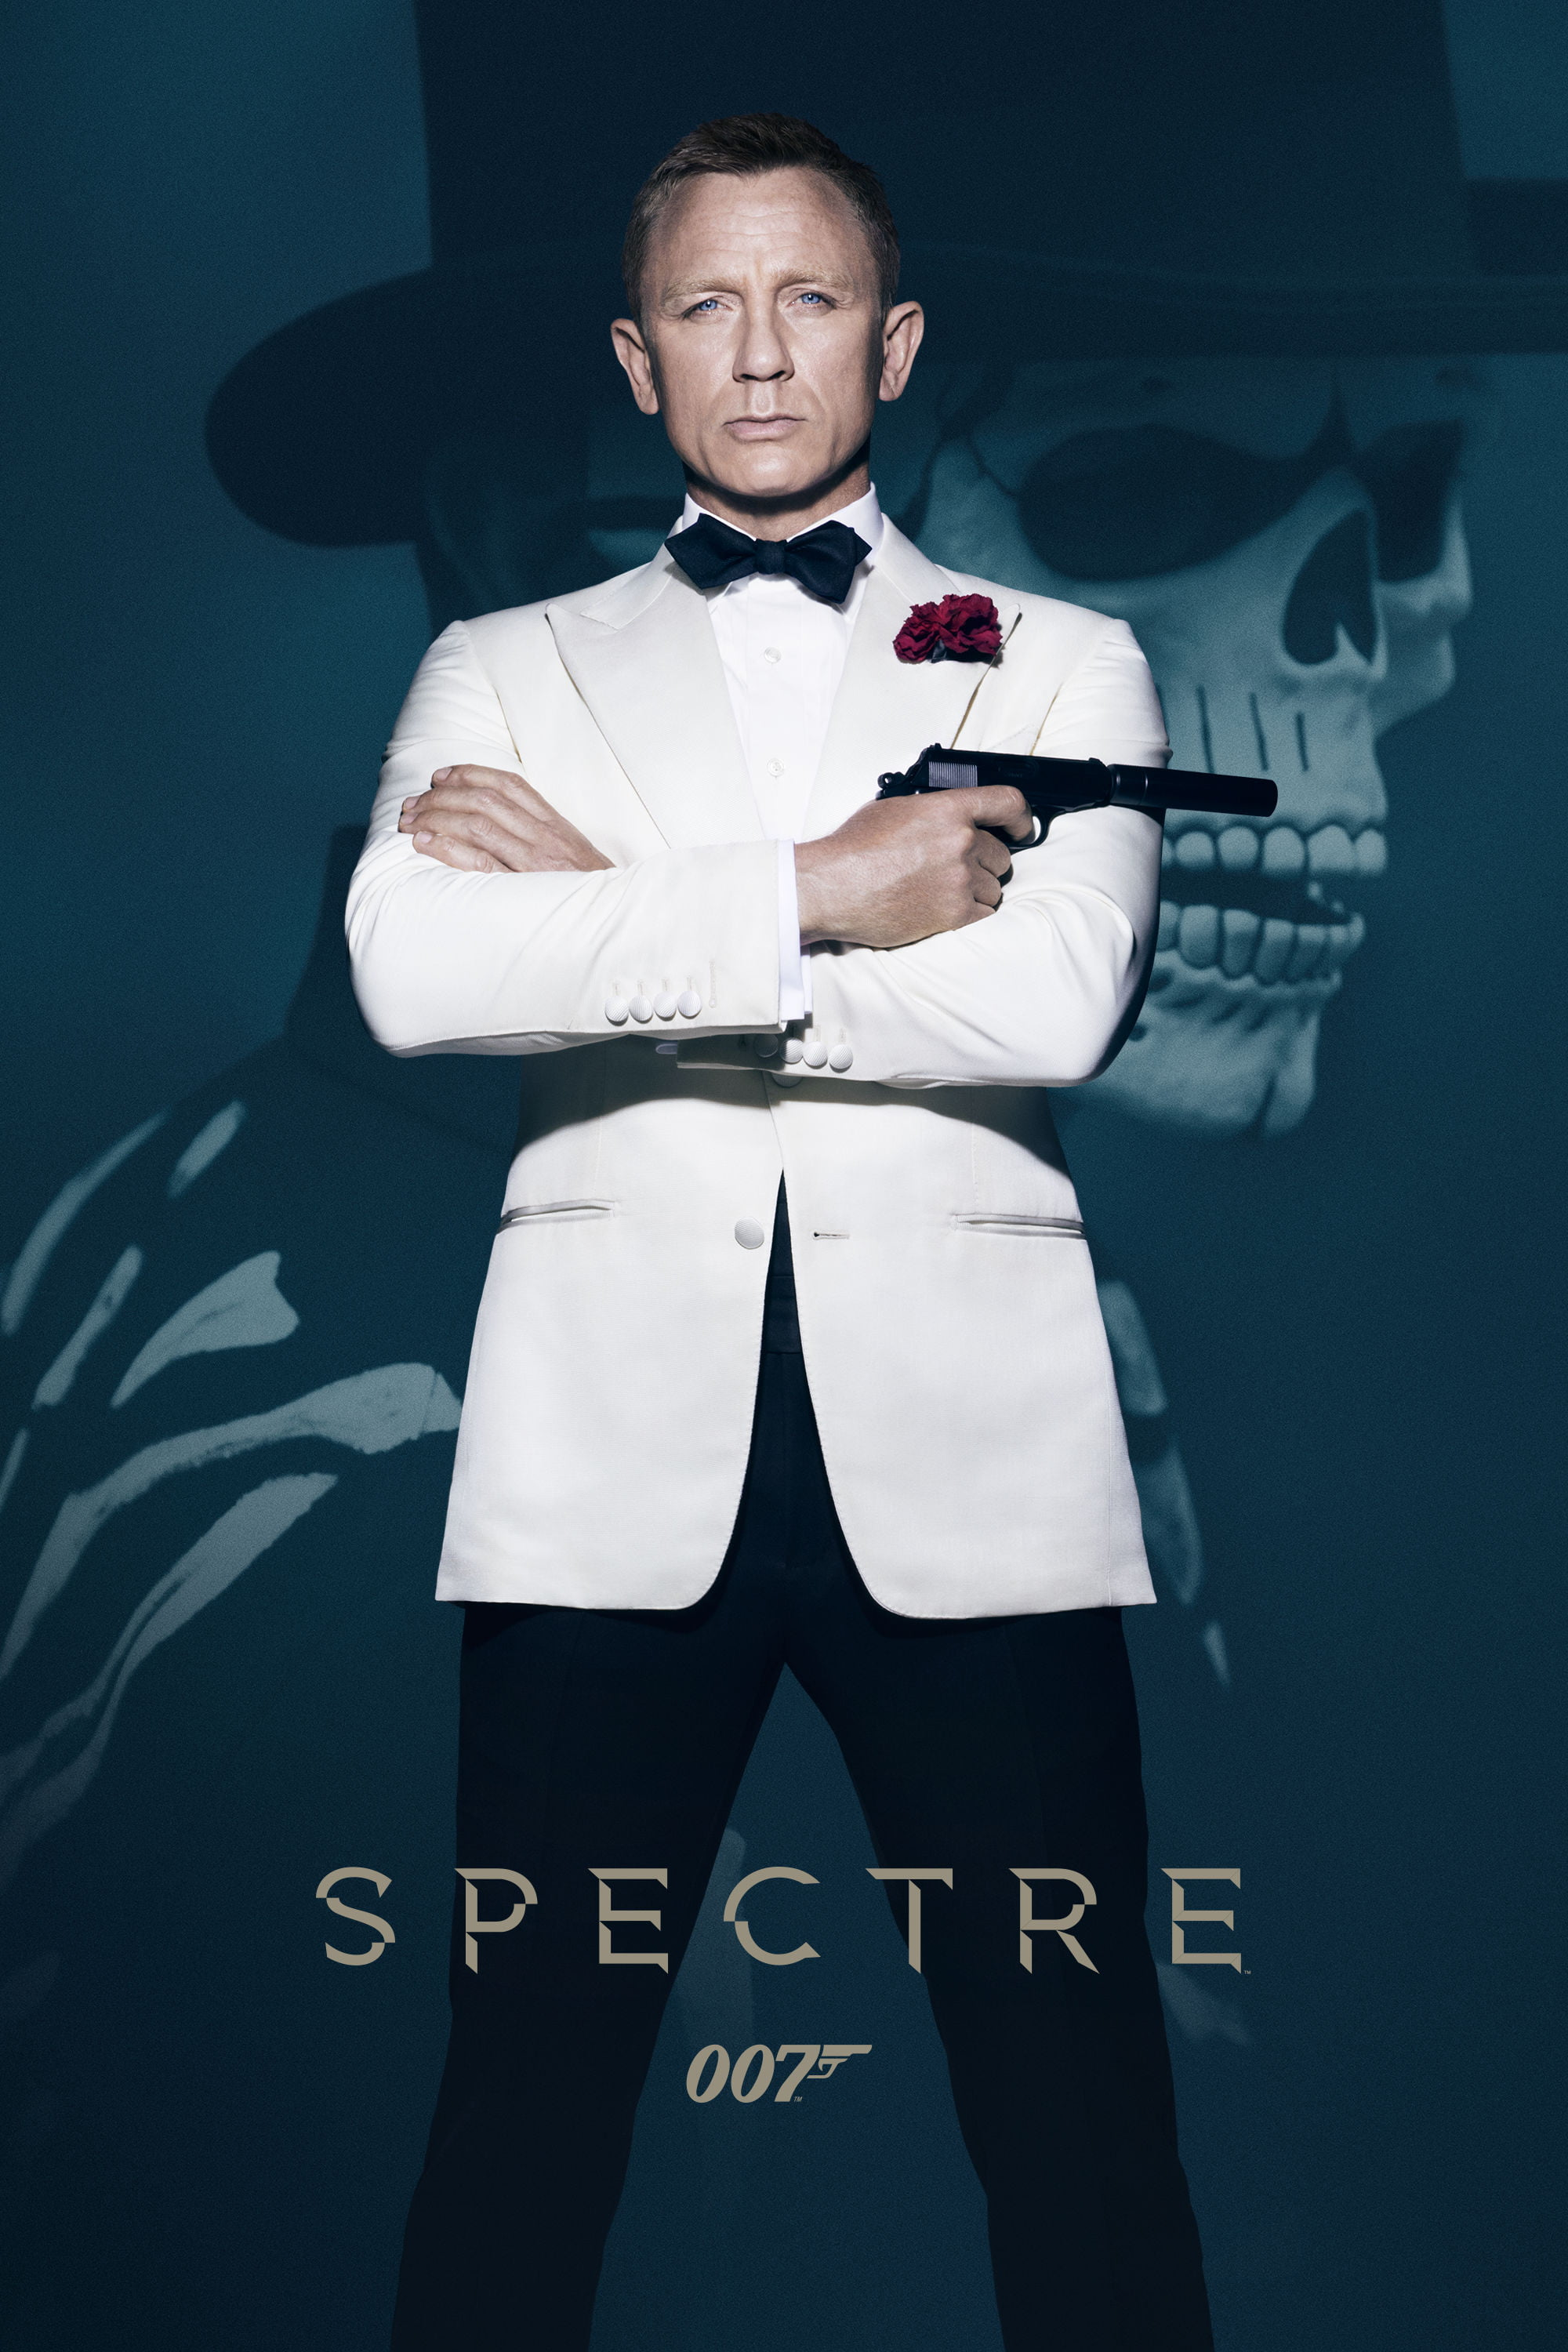 spectre-filming-locations-poster